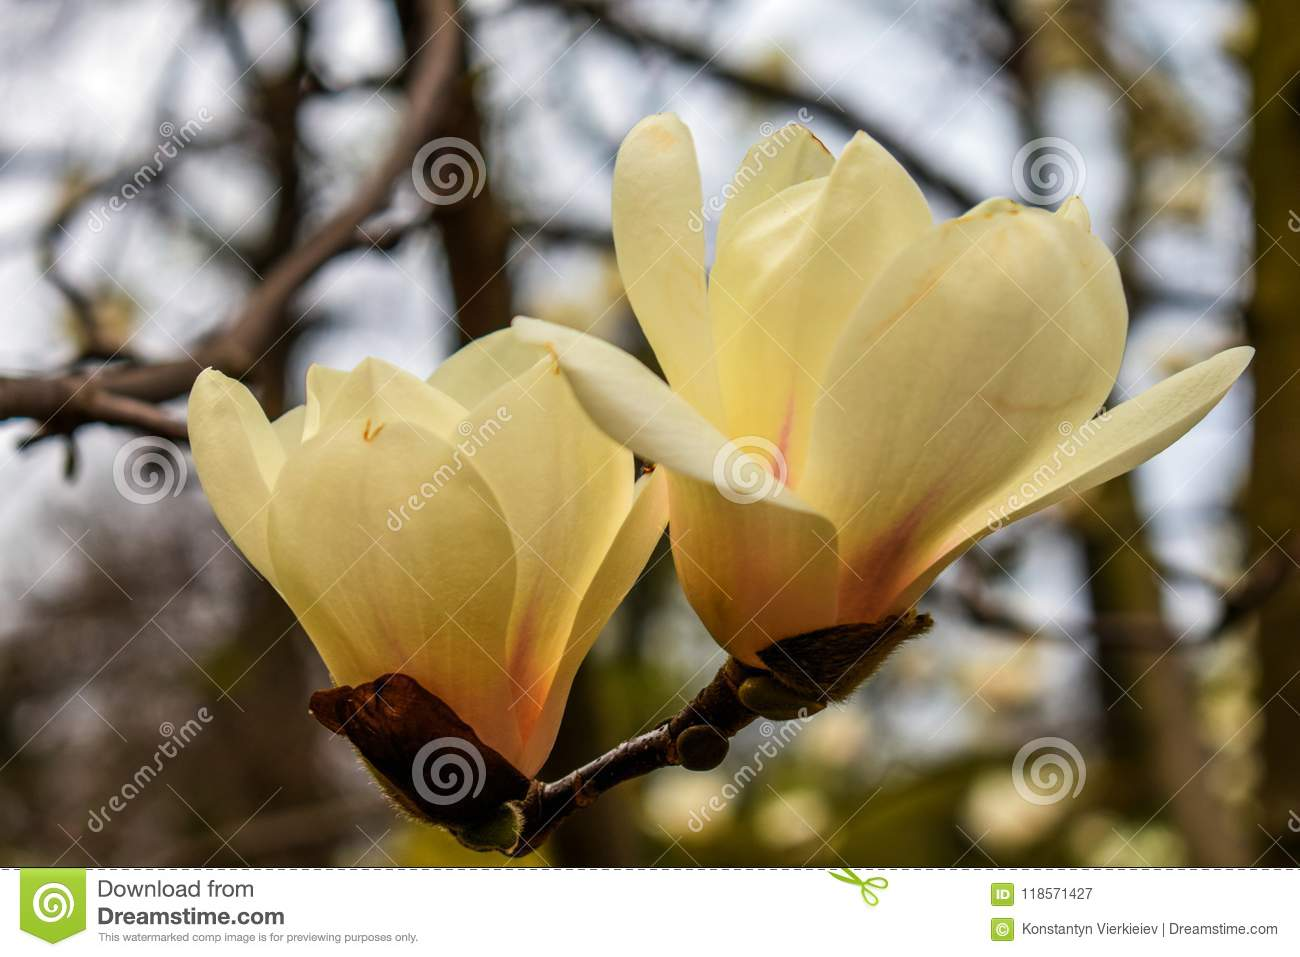 Magnolia - a tree of amazing beauty with a unique aroma